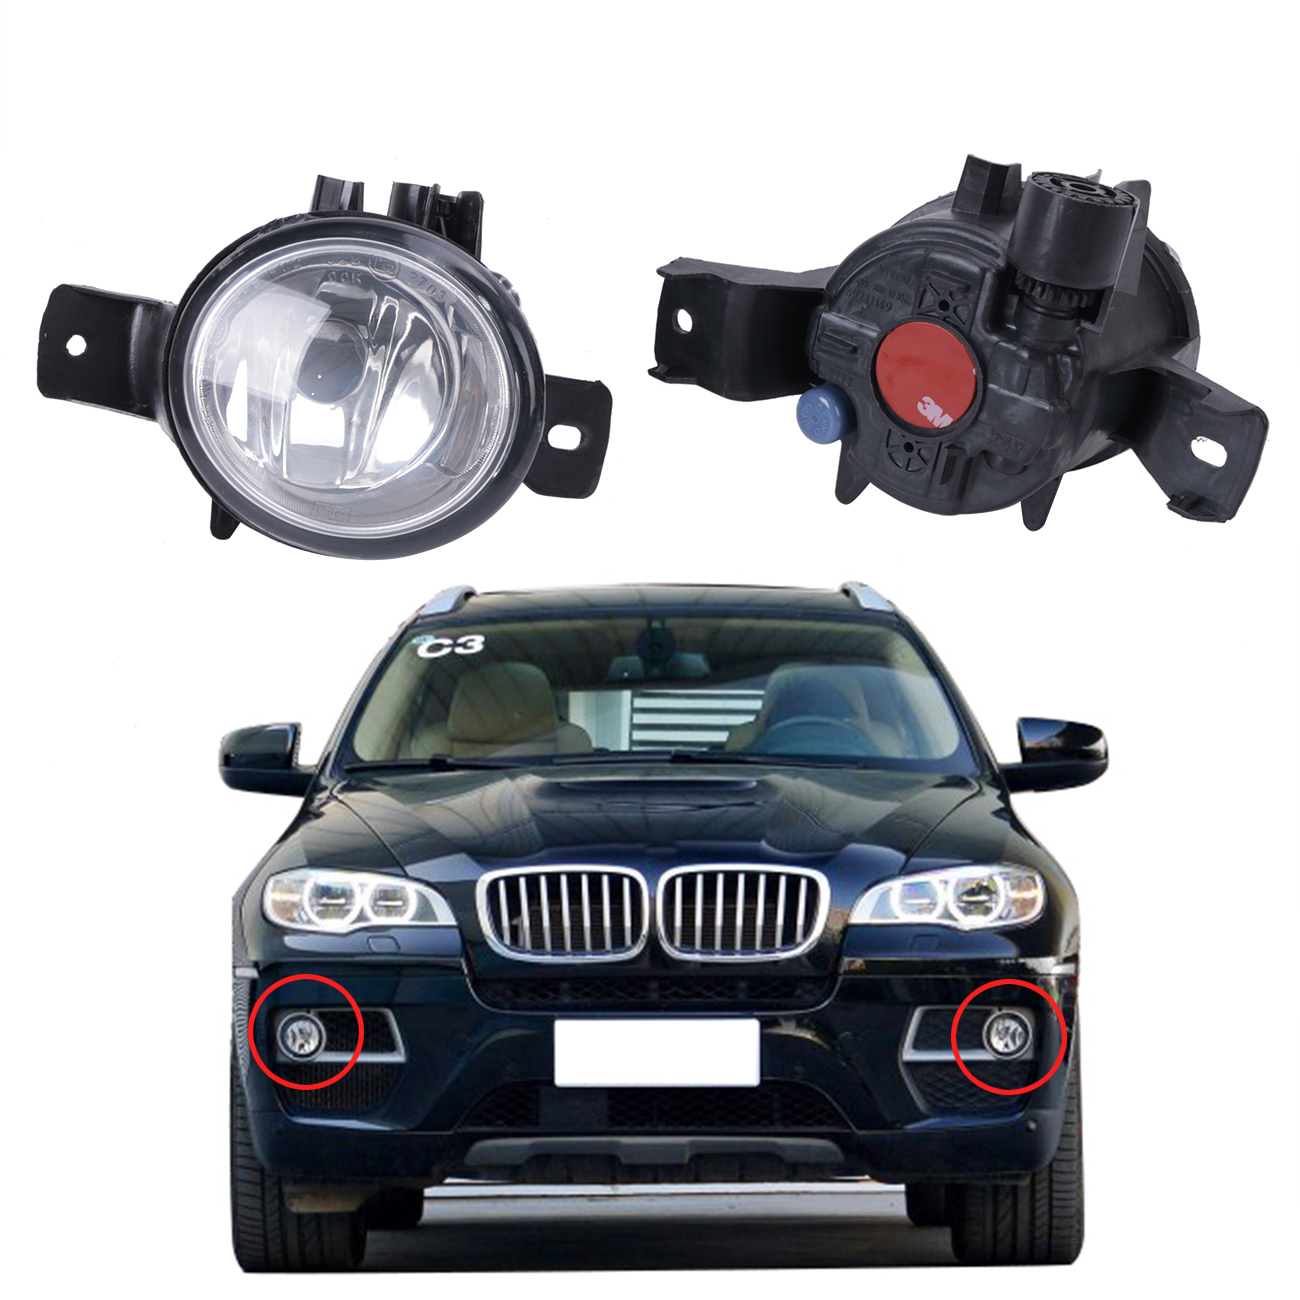 Left & Right Car Front Lateral Fog Light Foglamp For BMW X6 E71 E72 2008 2009 2010 2011 2012 2013 Car Lighting #W090 for vw golf 6 gti 2009 2010 2011 jetta 6 gli 2011 2012 2013 2014 new front right halogen new fog lamp fog light car styling